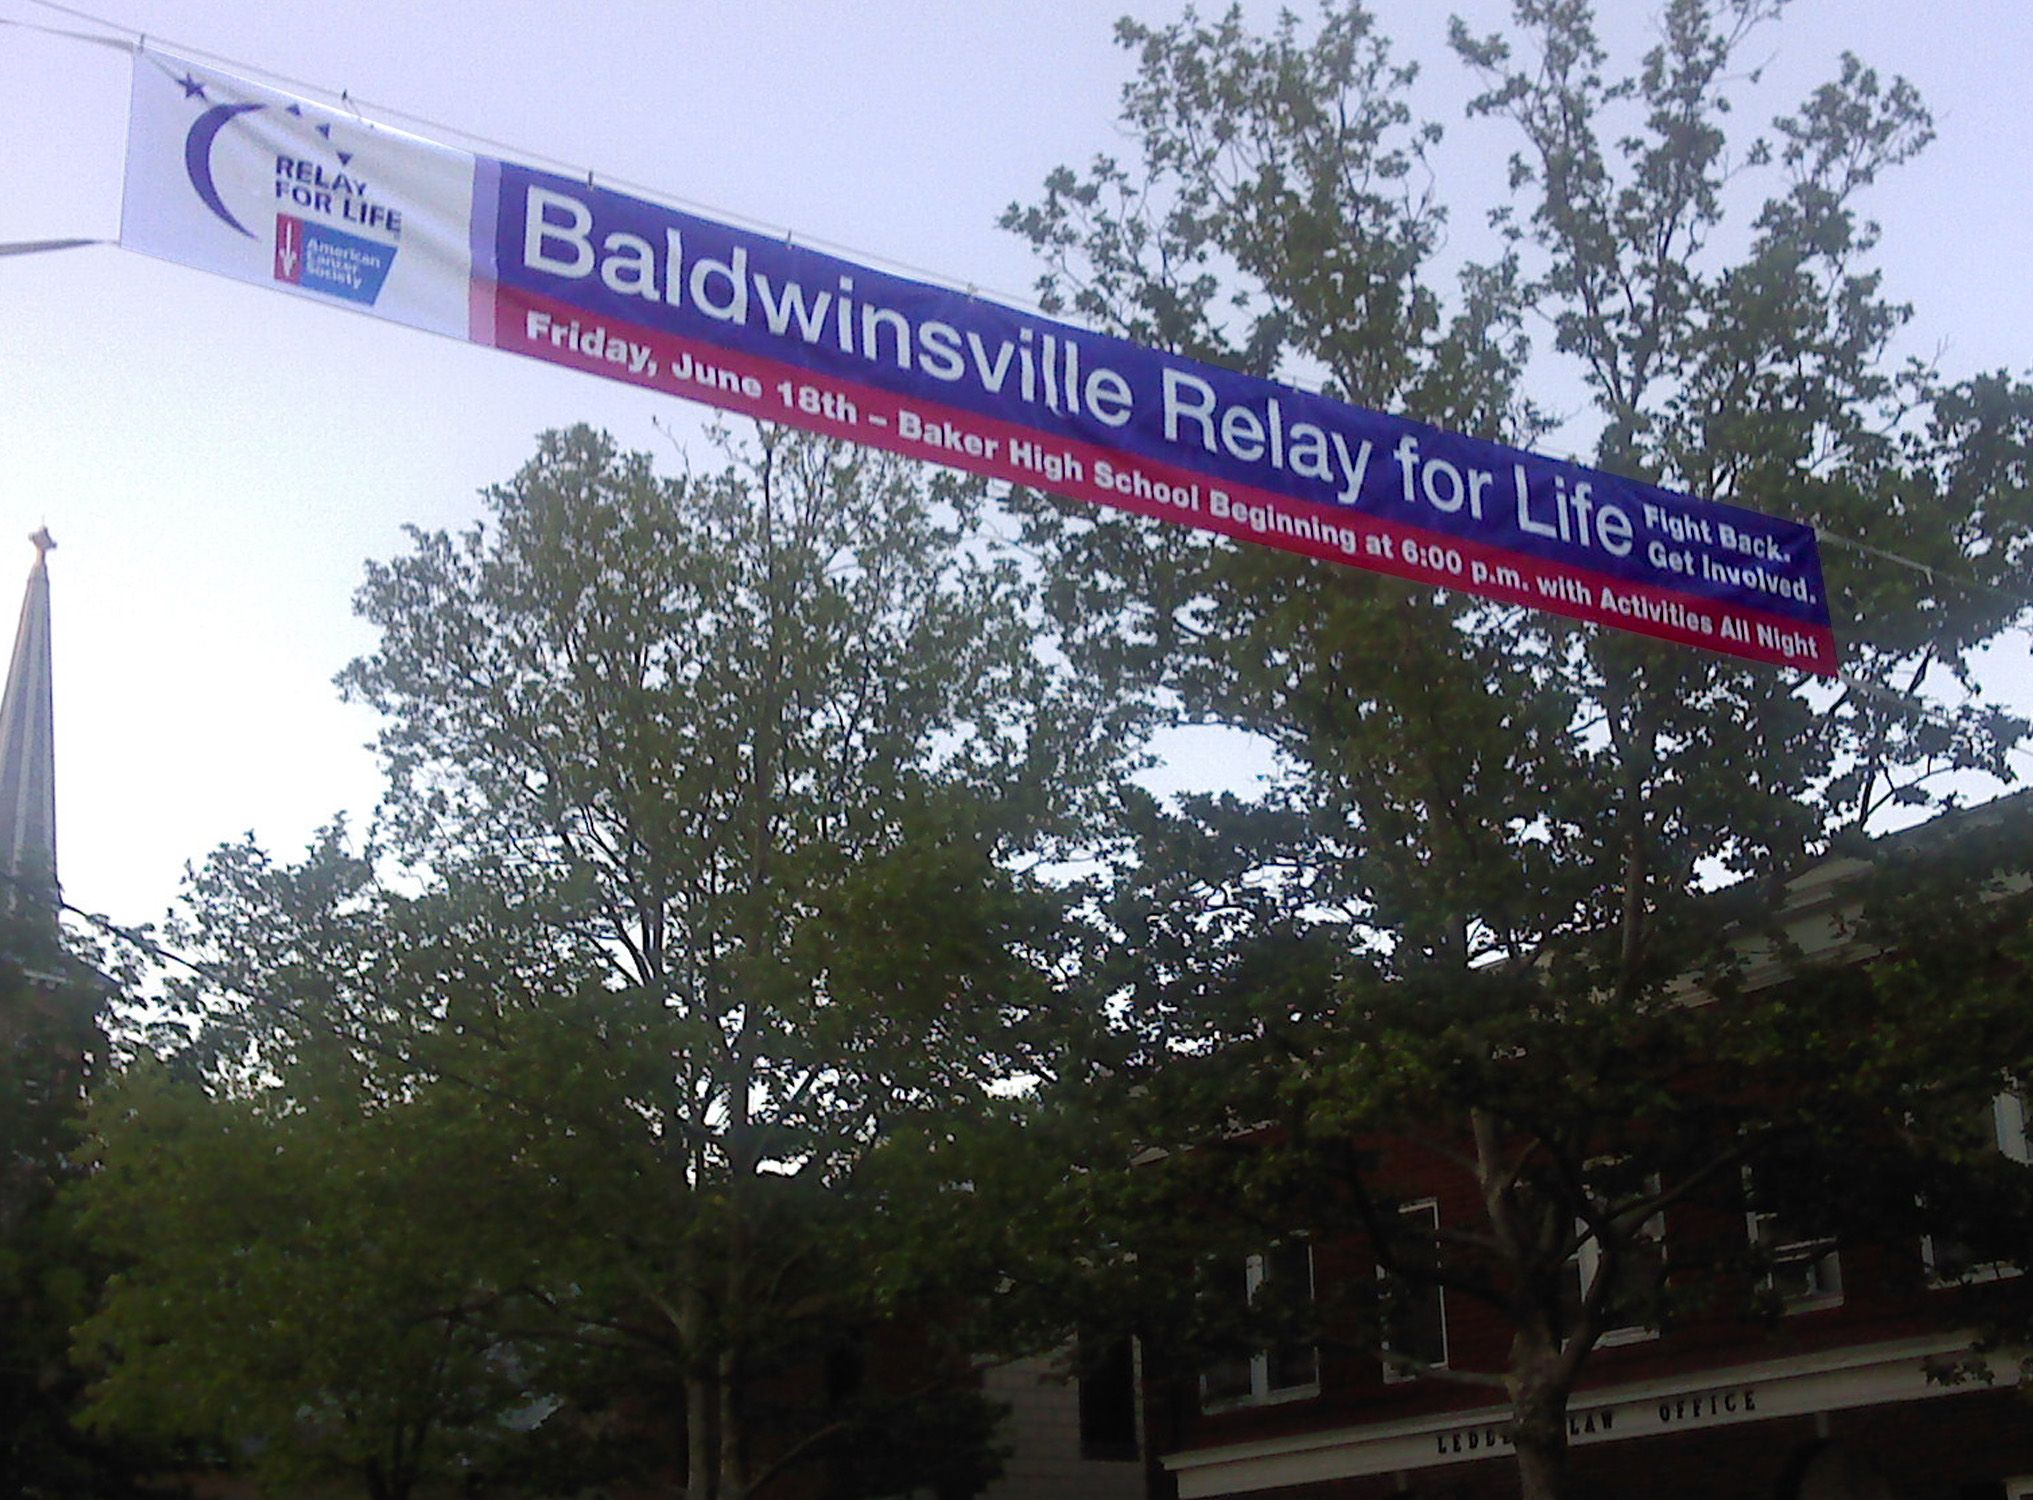 Baldwinsville Relay for Life Street Banner